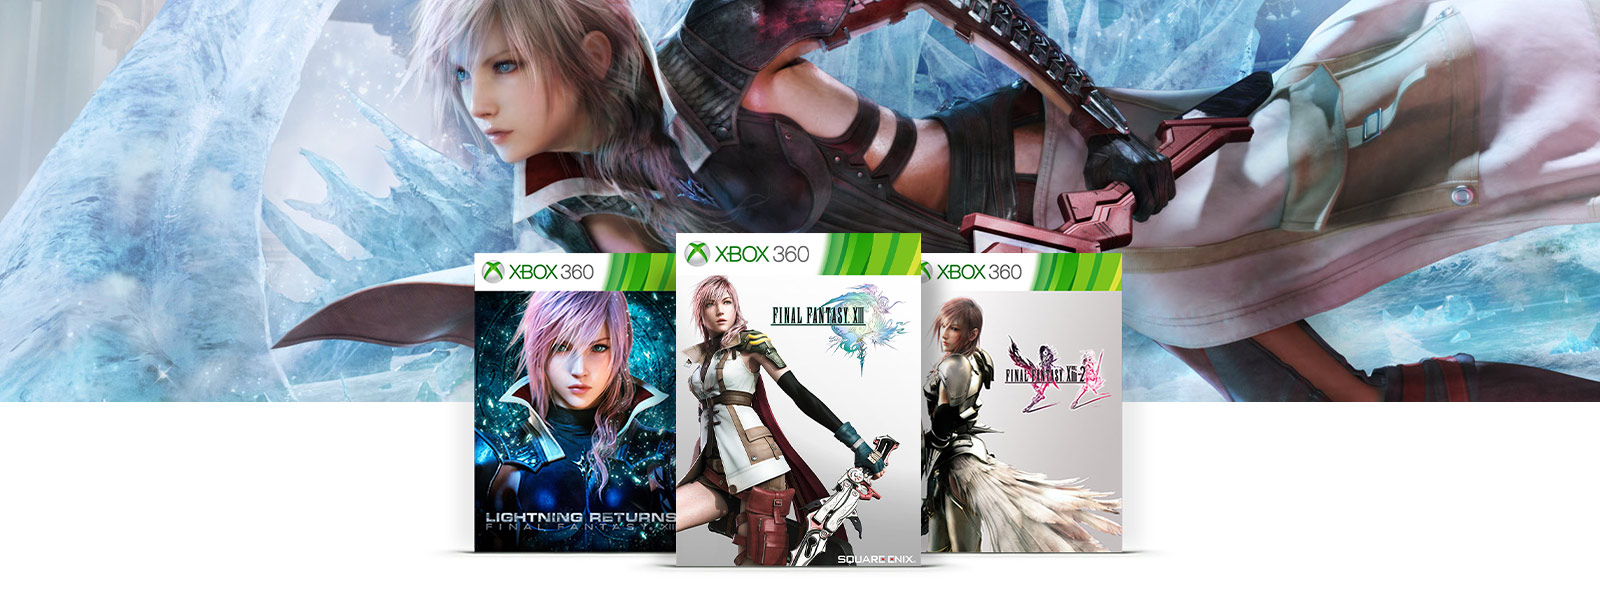 Doosafbeeldingen voor FINAL FANTASY XIII, FINAL FANTASY XIII-2, en LIGHTNING RETURNS FINAL FANTASY getoond over het personage Lightning